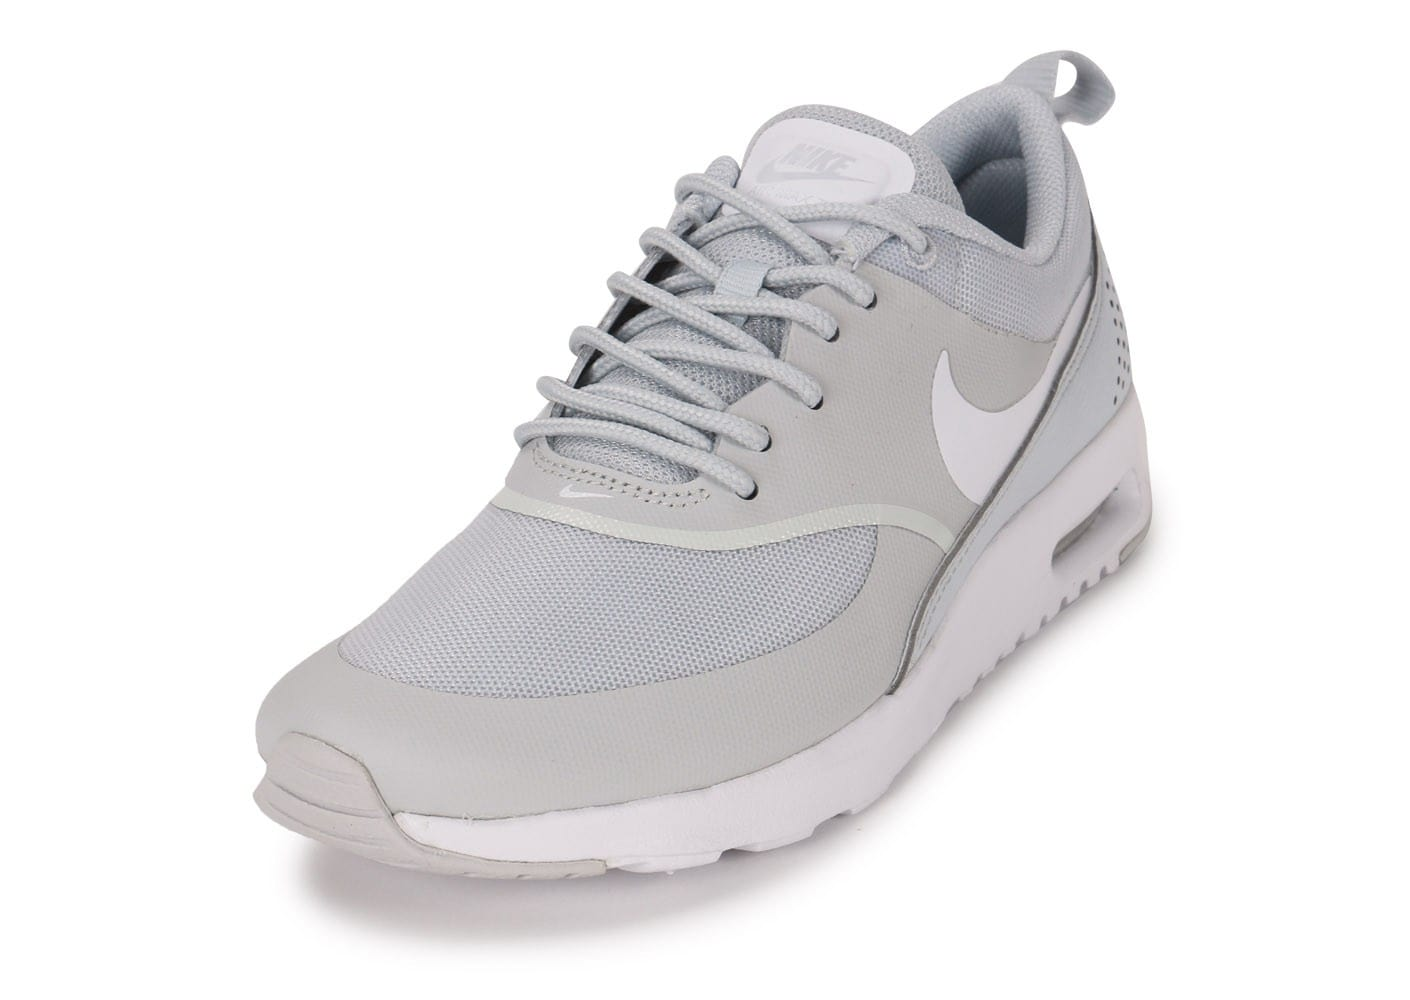 buy popular cb71f 7beed ... Chaussures Nike Air Max Thea grise vue avant ...